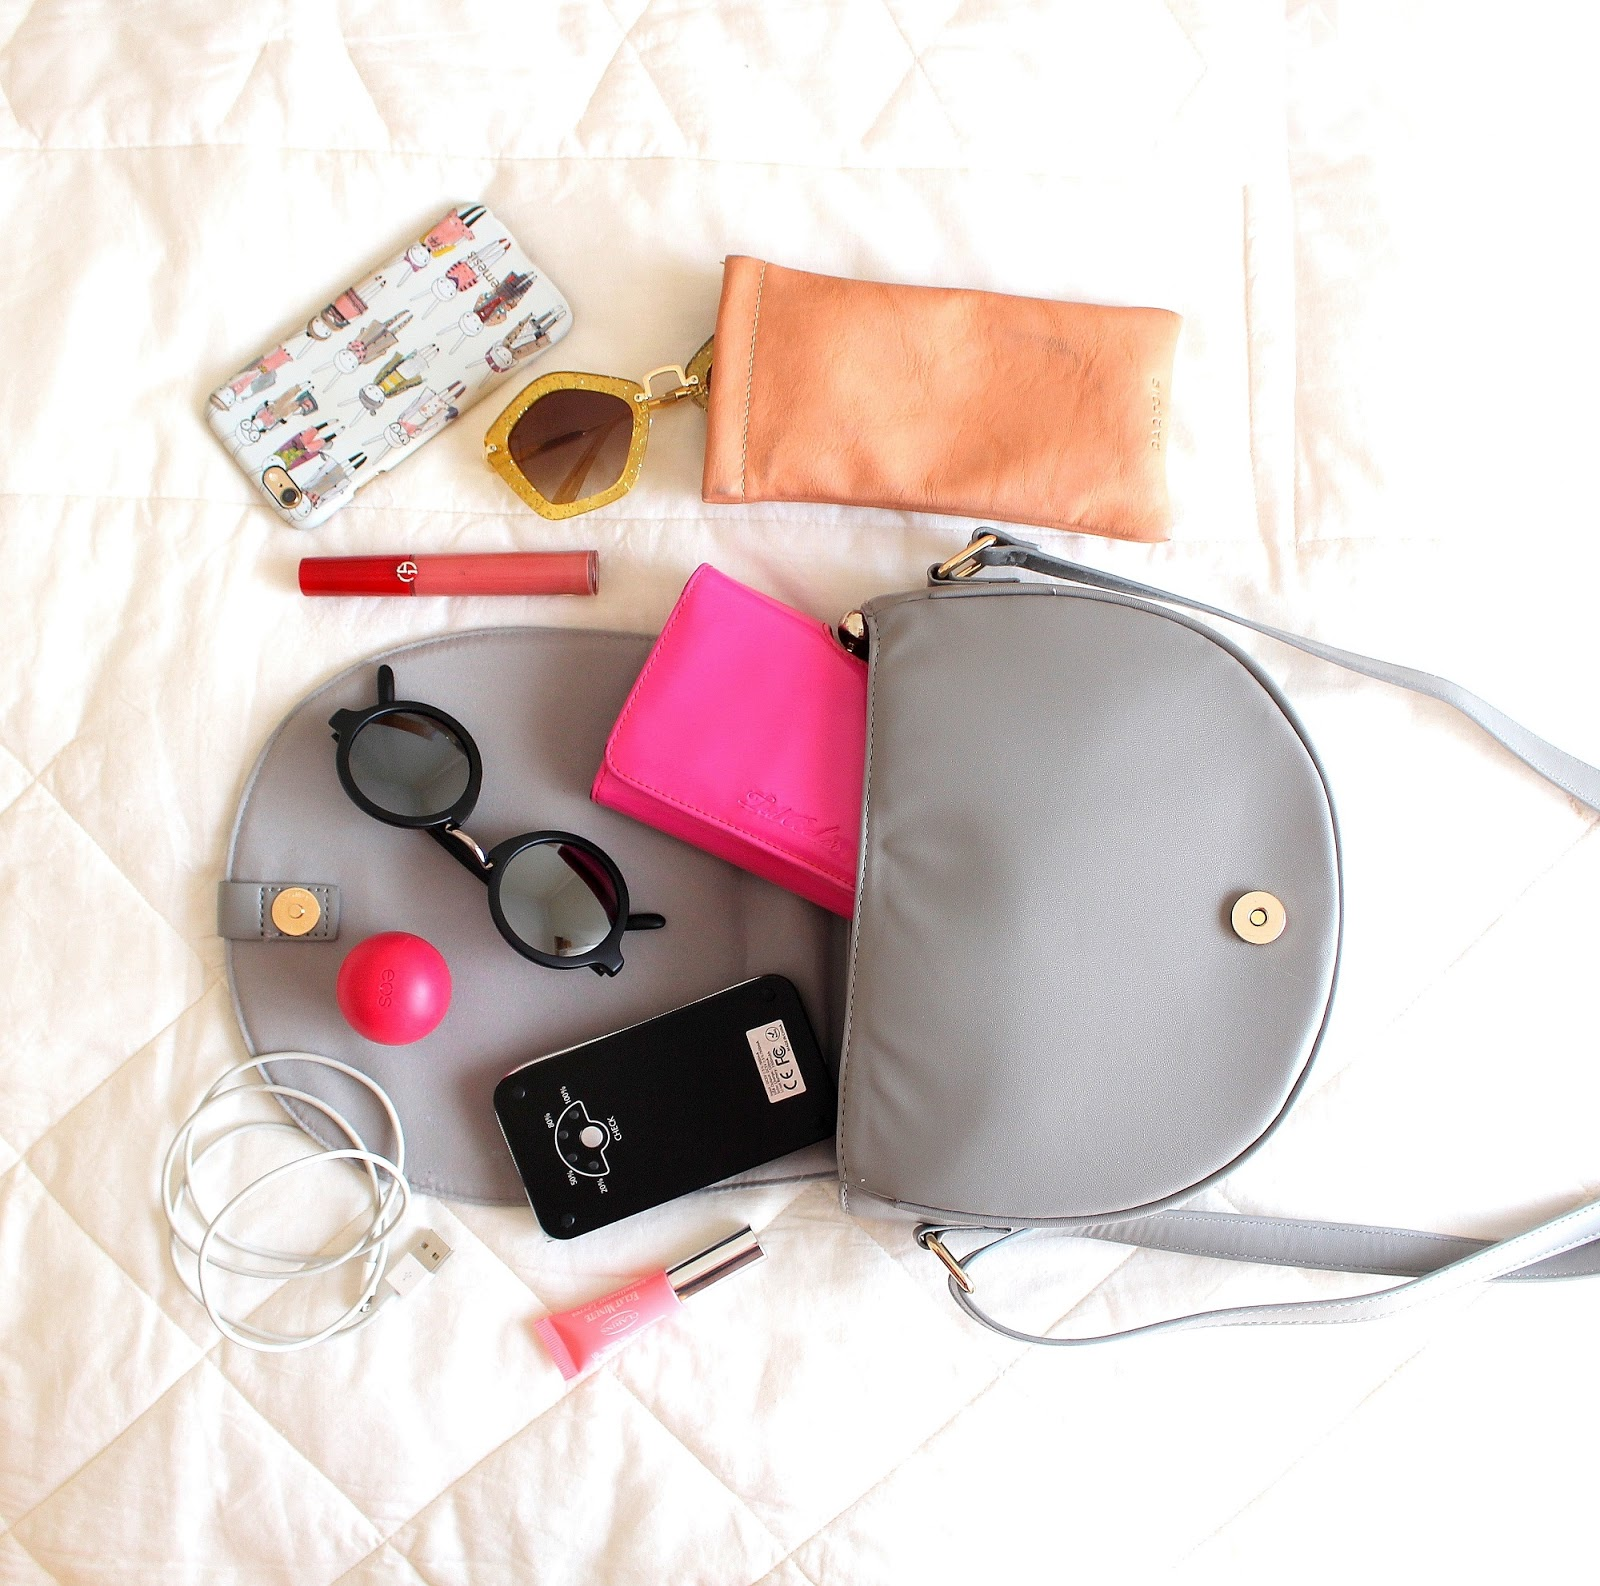 peexo fashion blogger what's in my bag